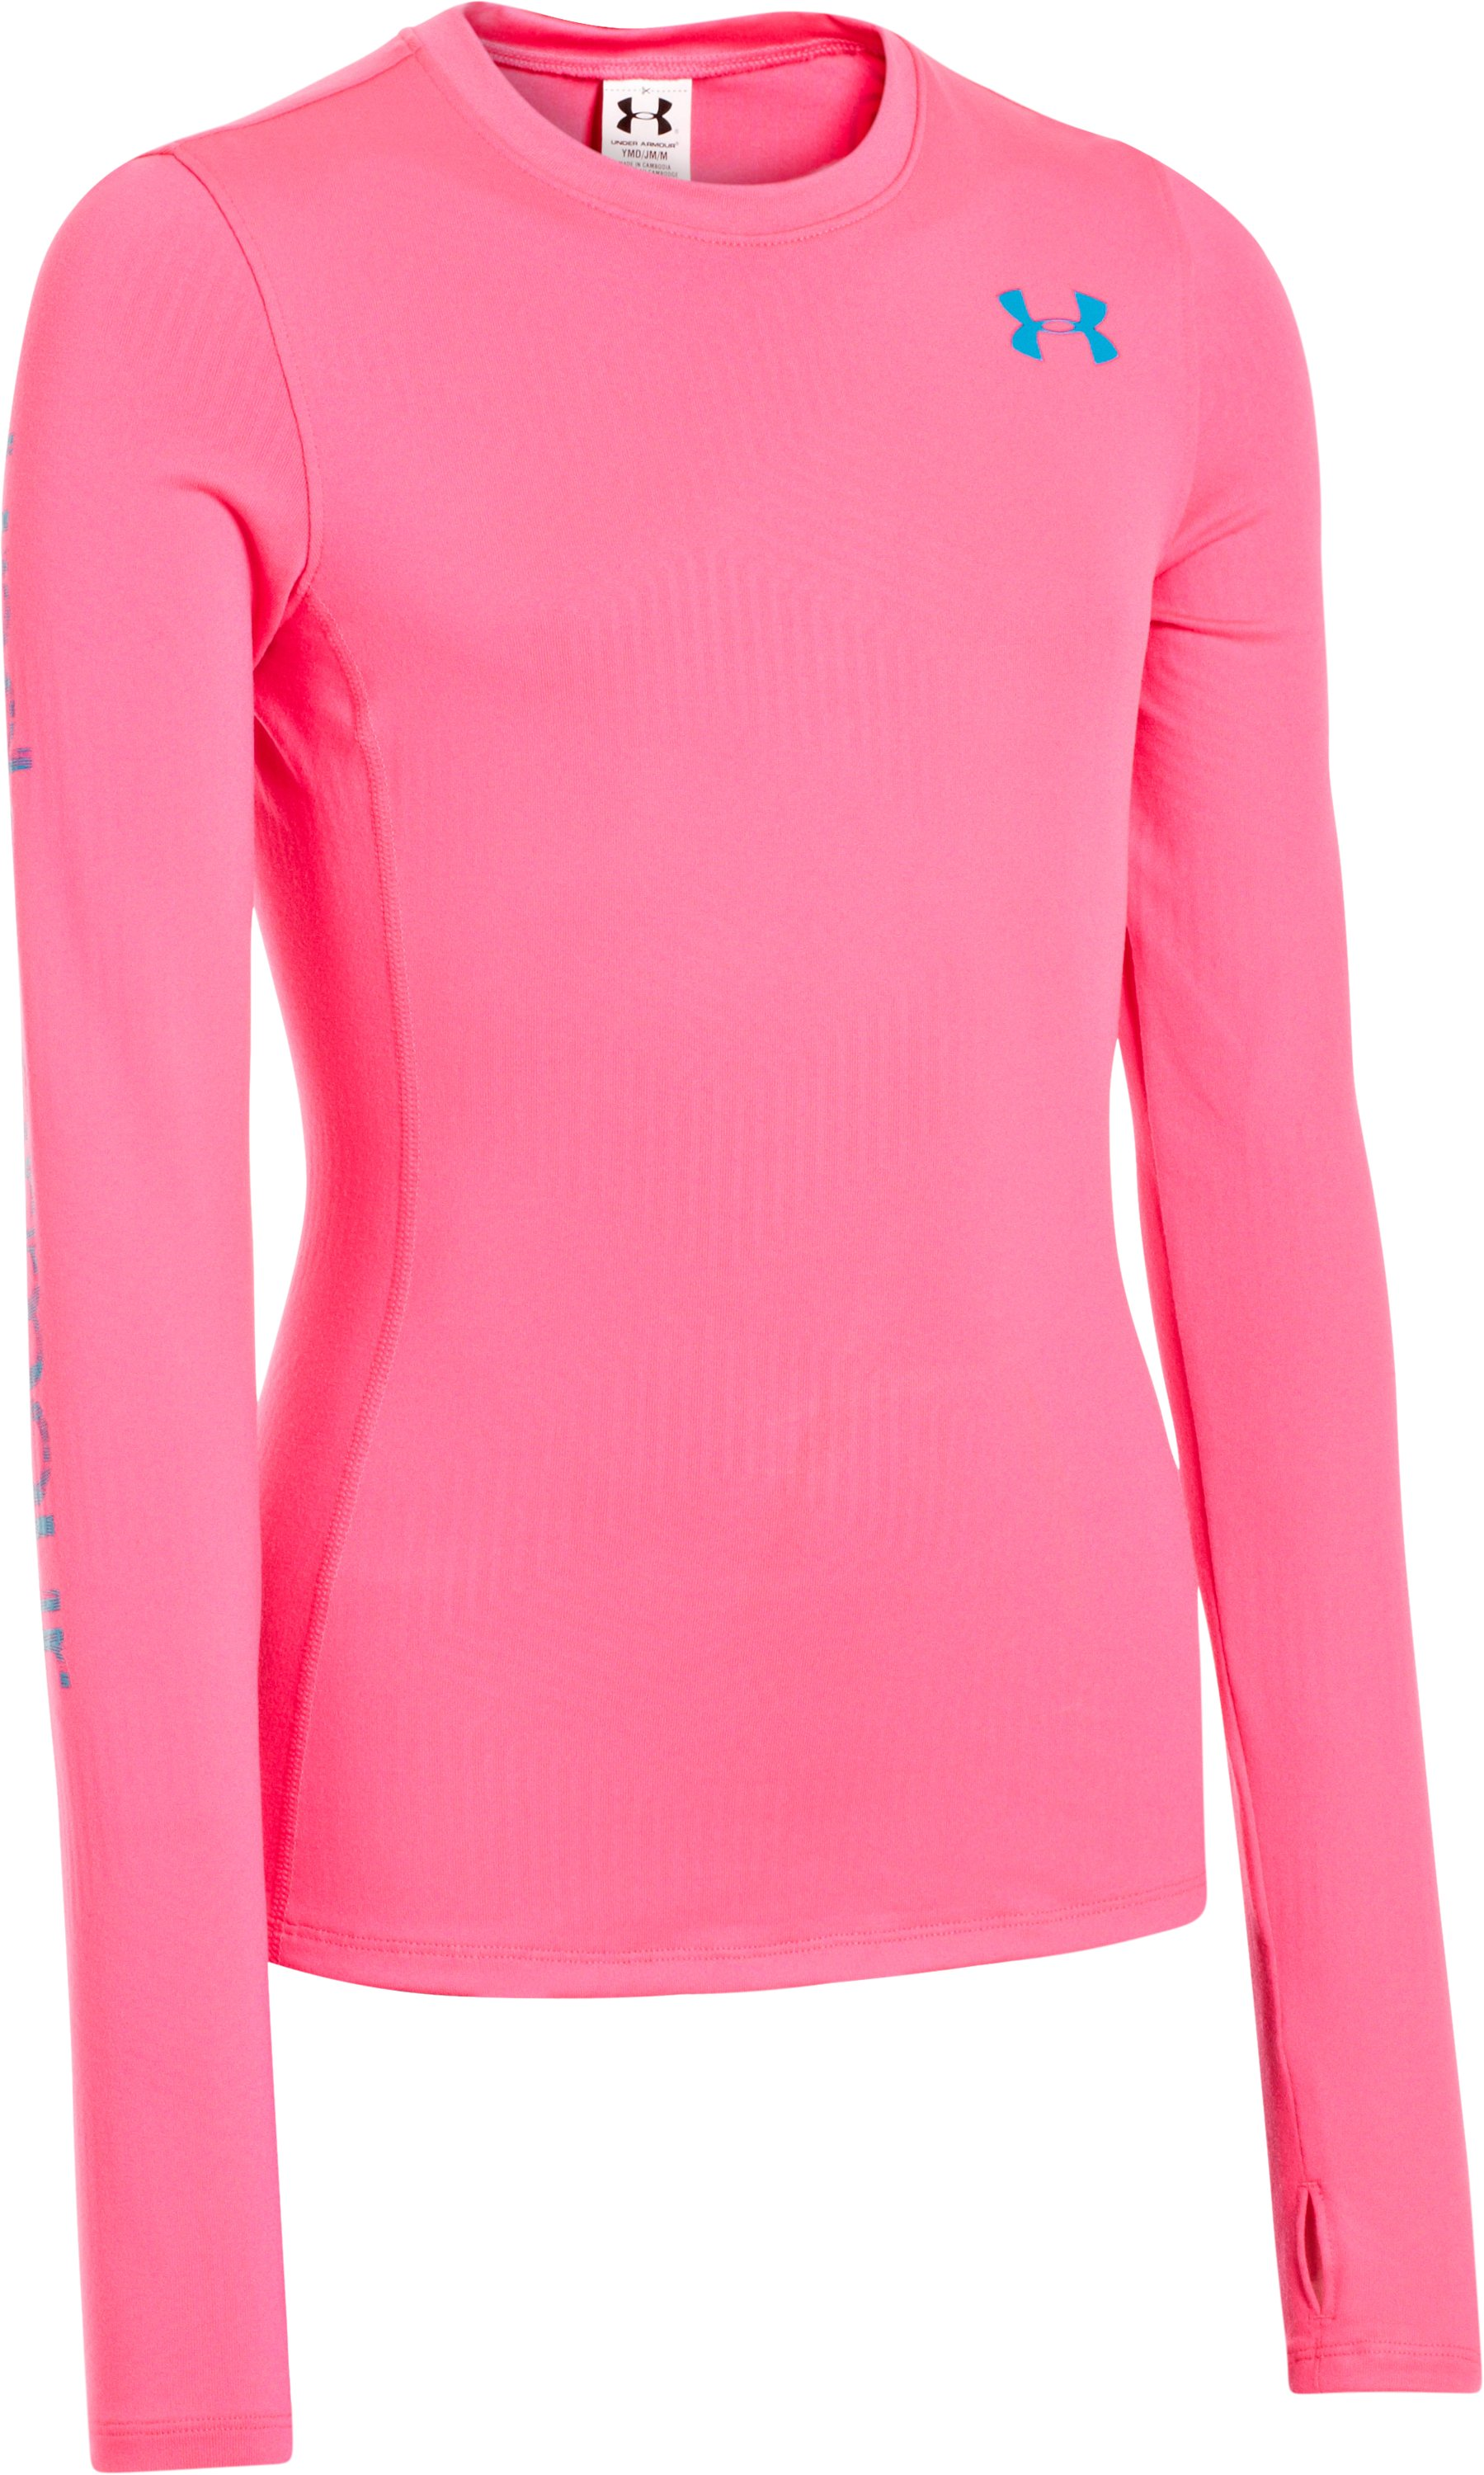 Girls' ColdGear® Infrared Long Sleeve Crew, PINKADELIC, zoomed image